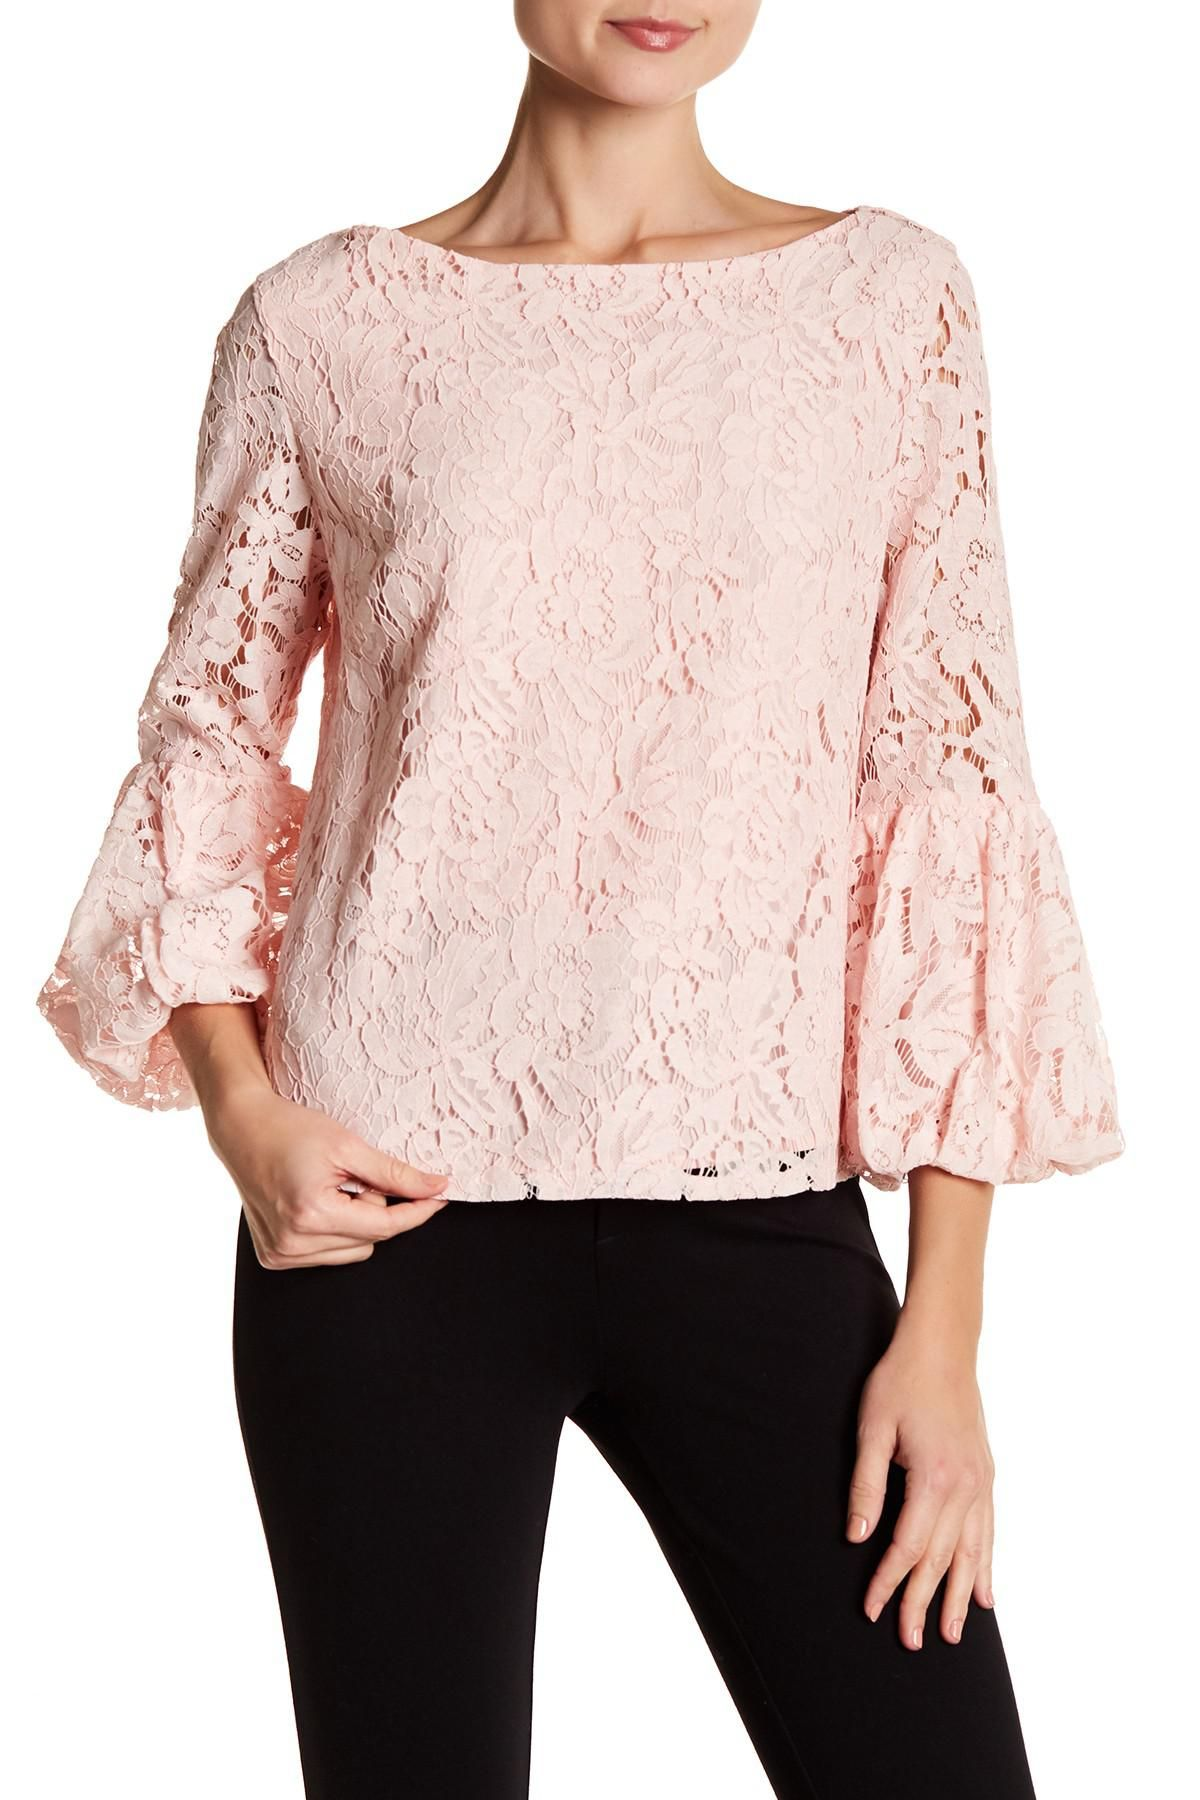 Laundry By Shelli Segal Pink Lace Blouse Google Search Pink